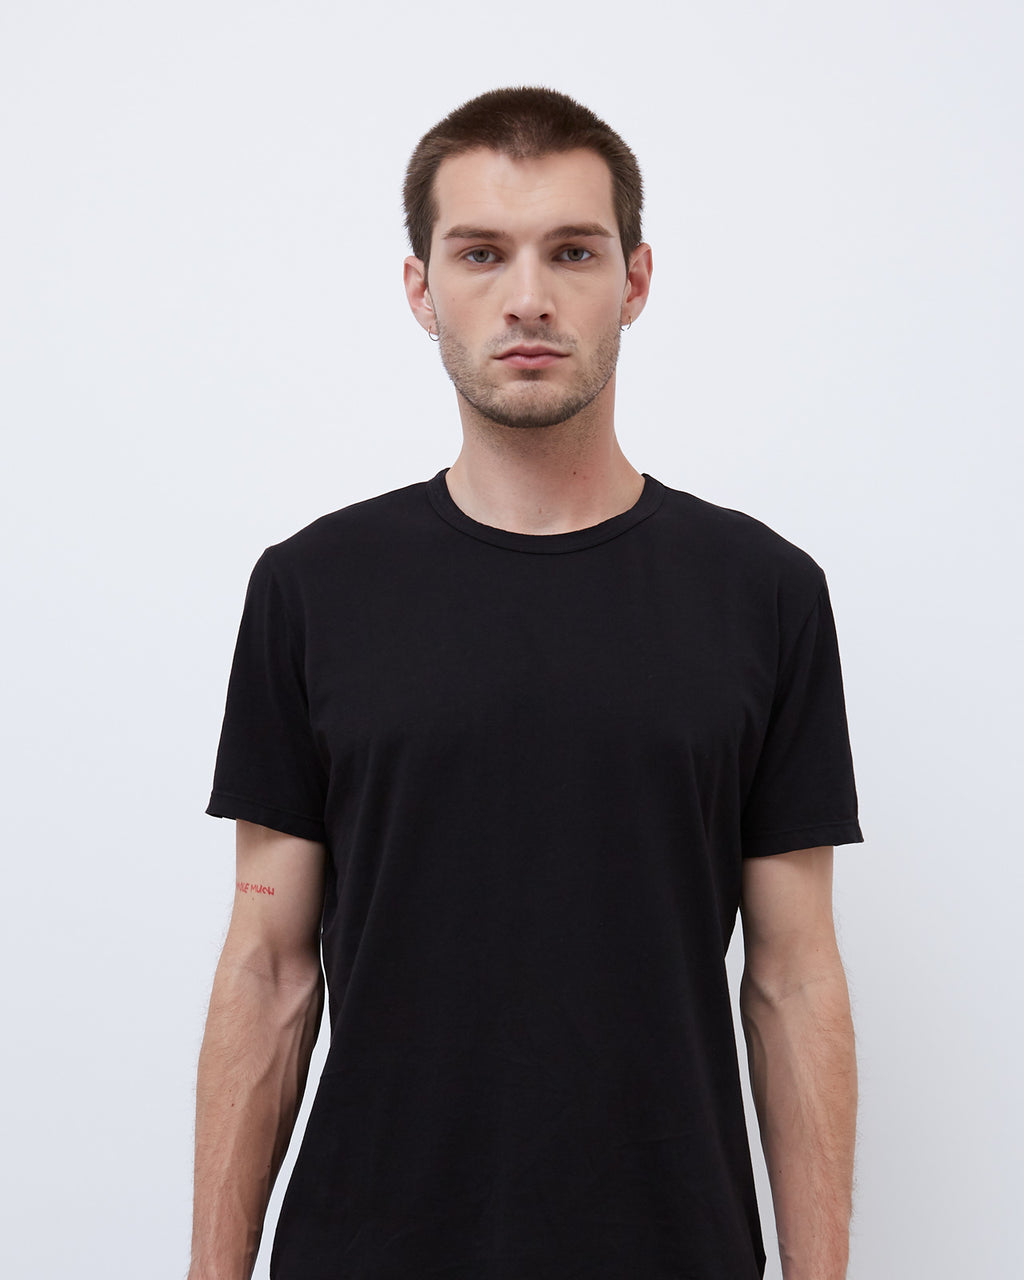 The Crew Neck Tee in Black